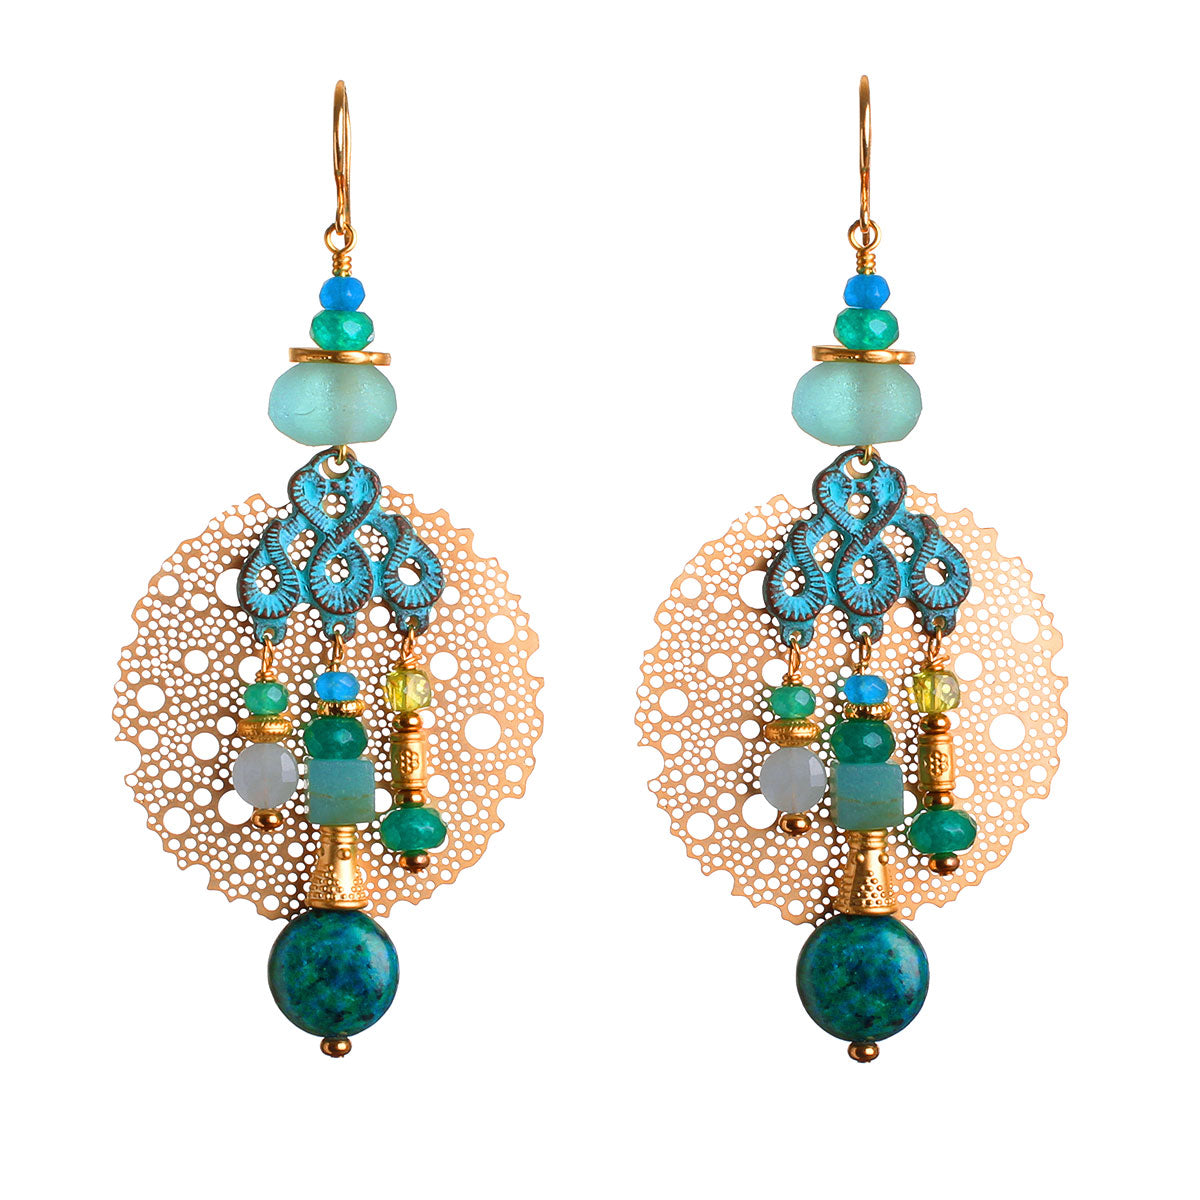 N°655 The Salty Soul & Urban Adventures Statement Earrings